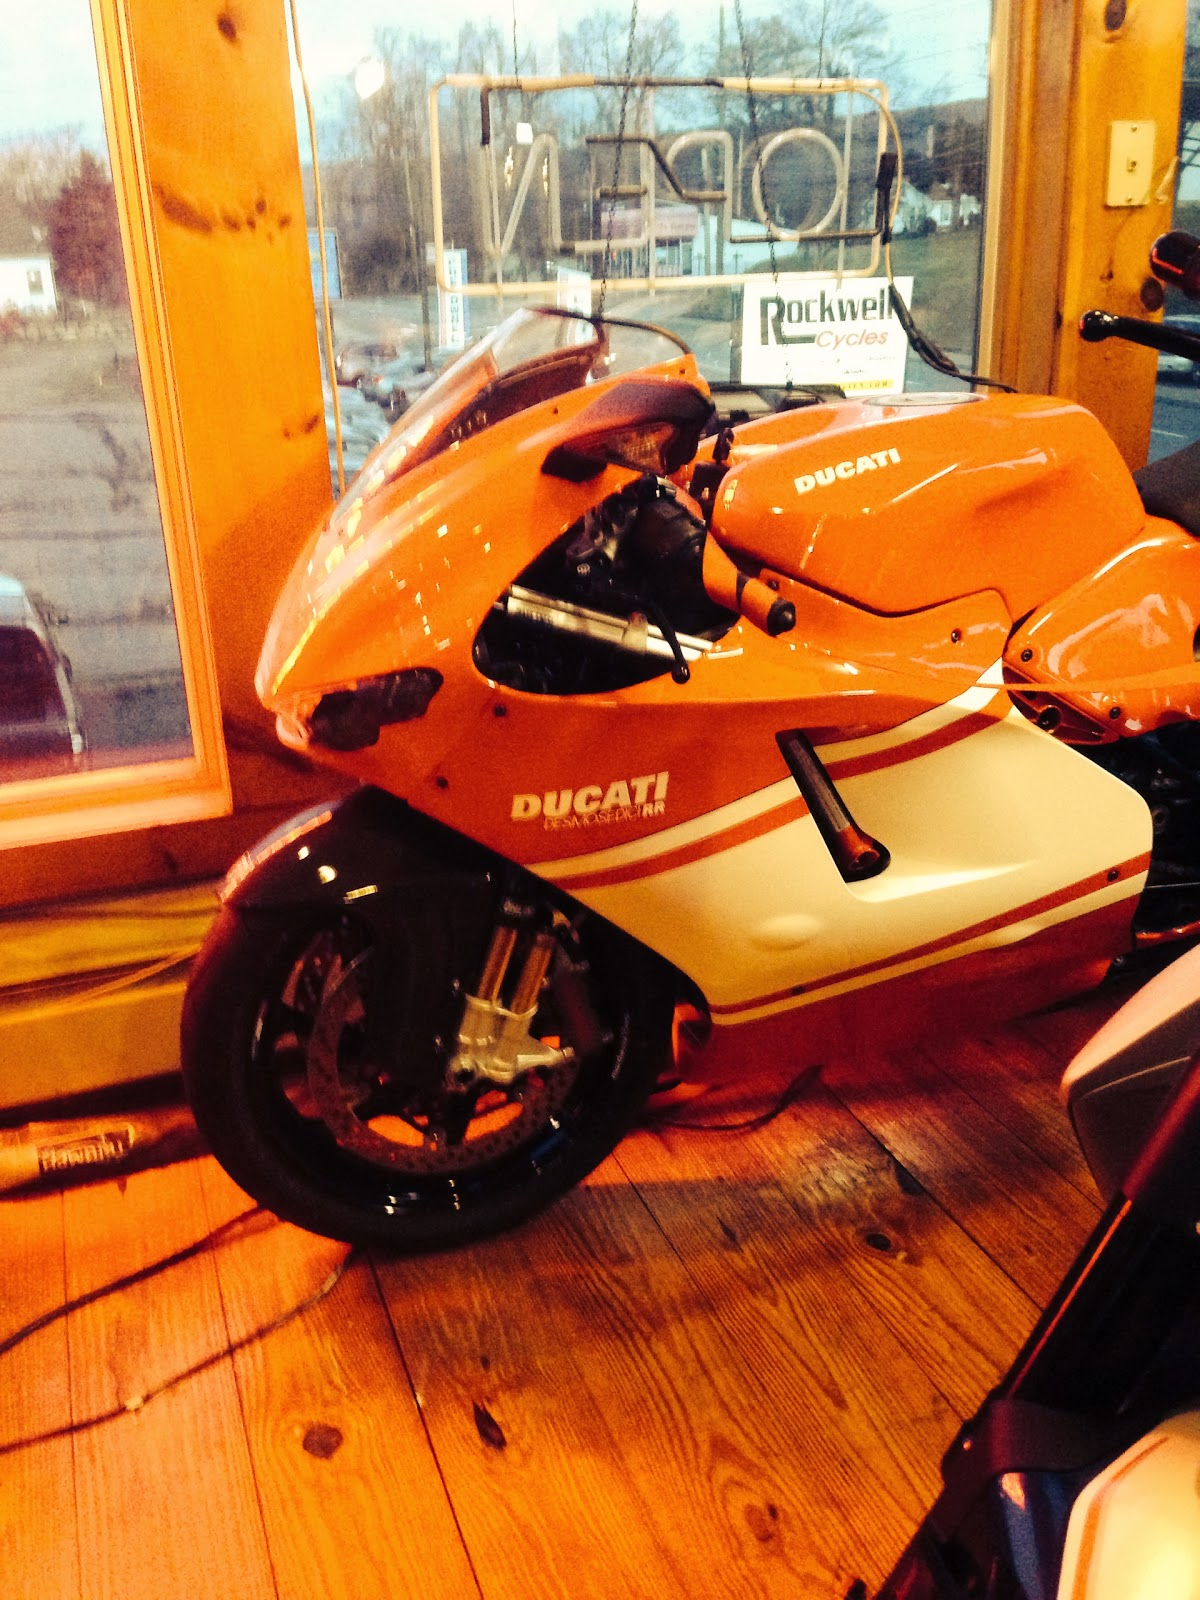 Rockwell Cycle and DESMO Ducati Holiday Parties with the DOCNYC from Tigho NYDUCATI Desmodici RR Panigale